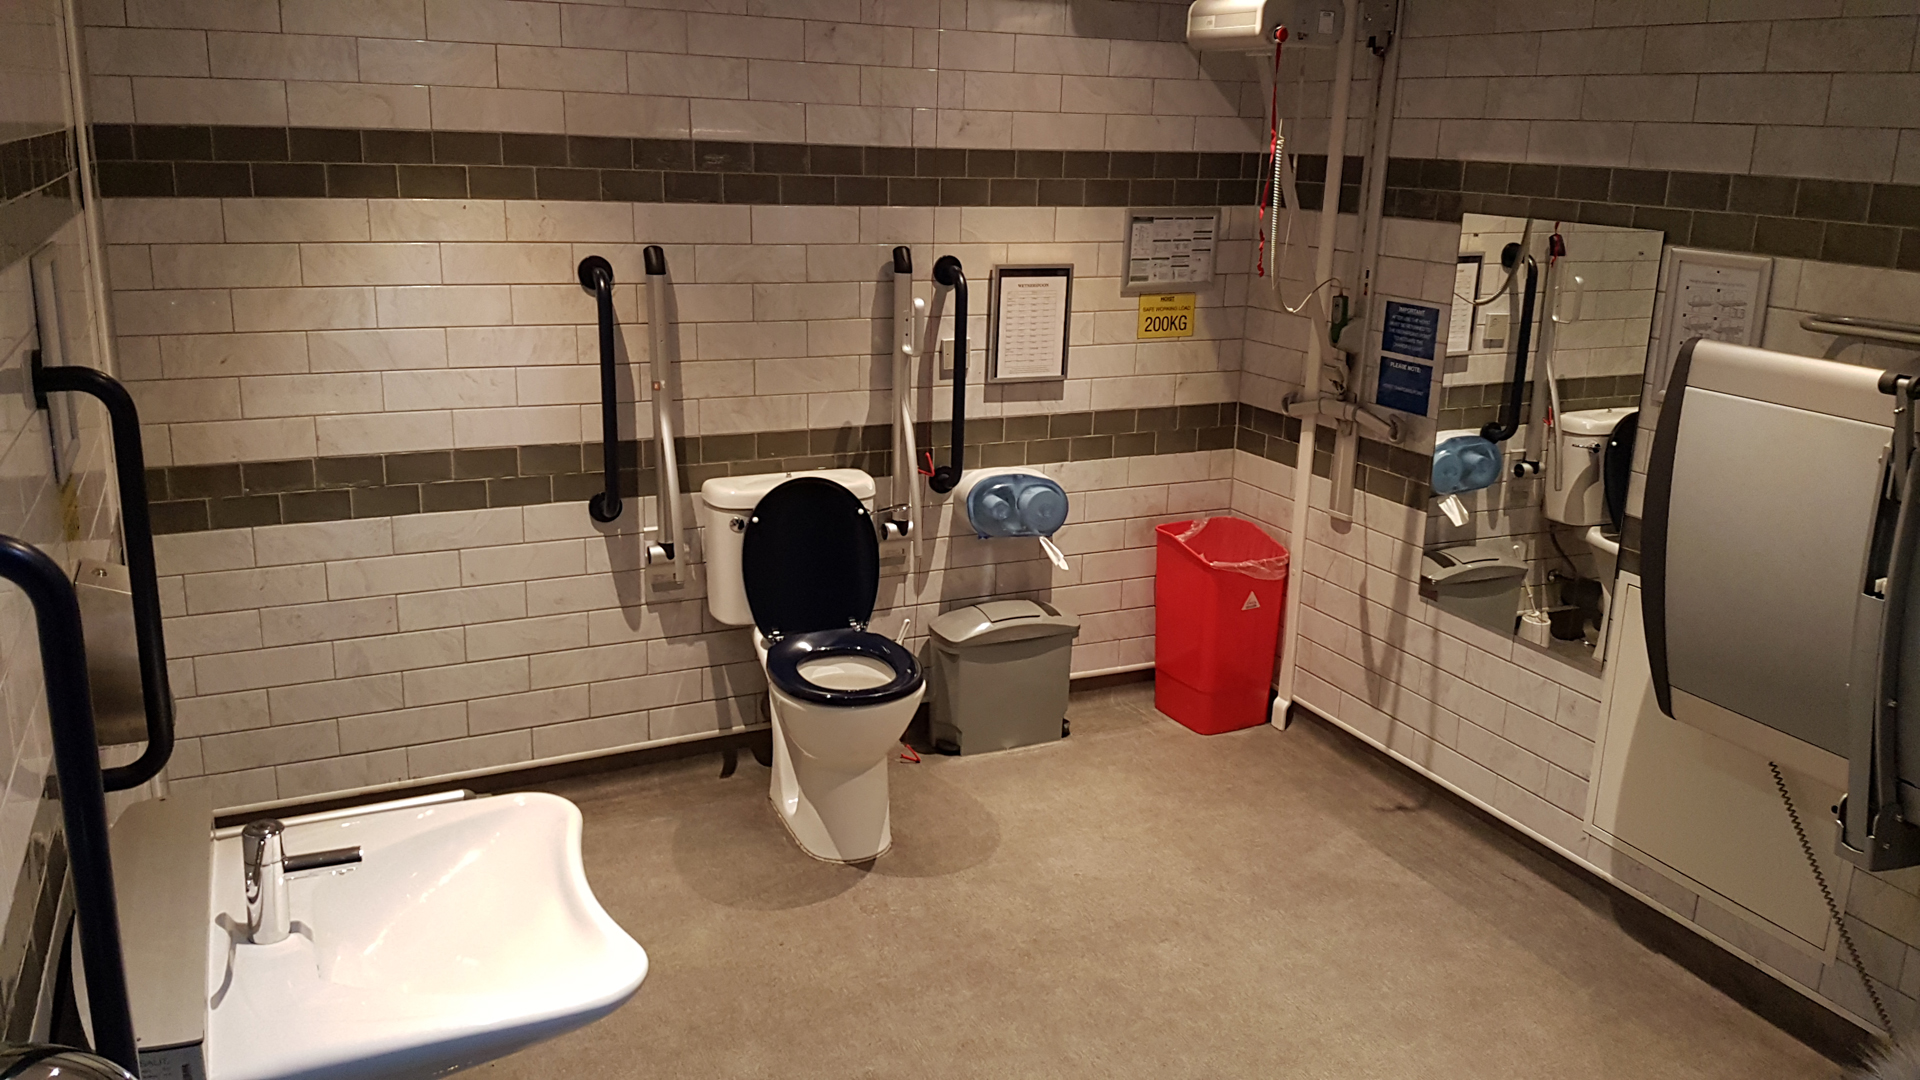 Changing Places toilet at Wetherspoons Waverley The Booking Office, which is across from Edinburgh's Christmas market at Princes Street.